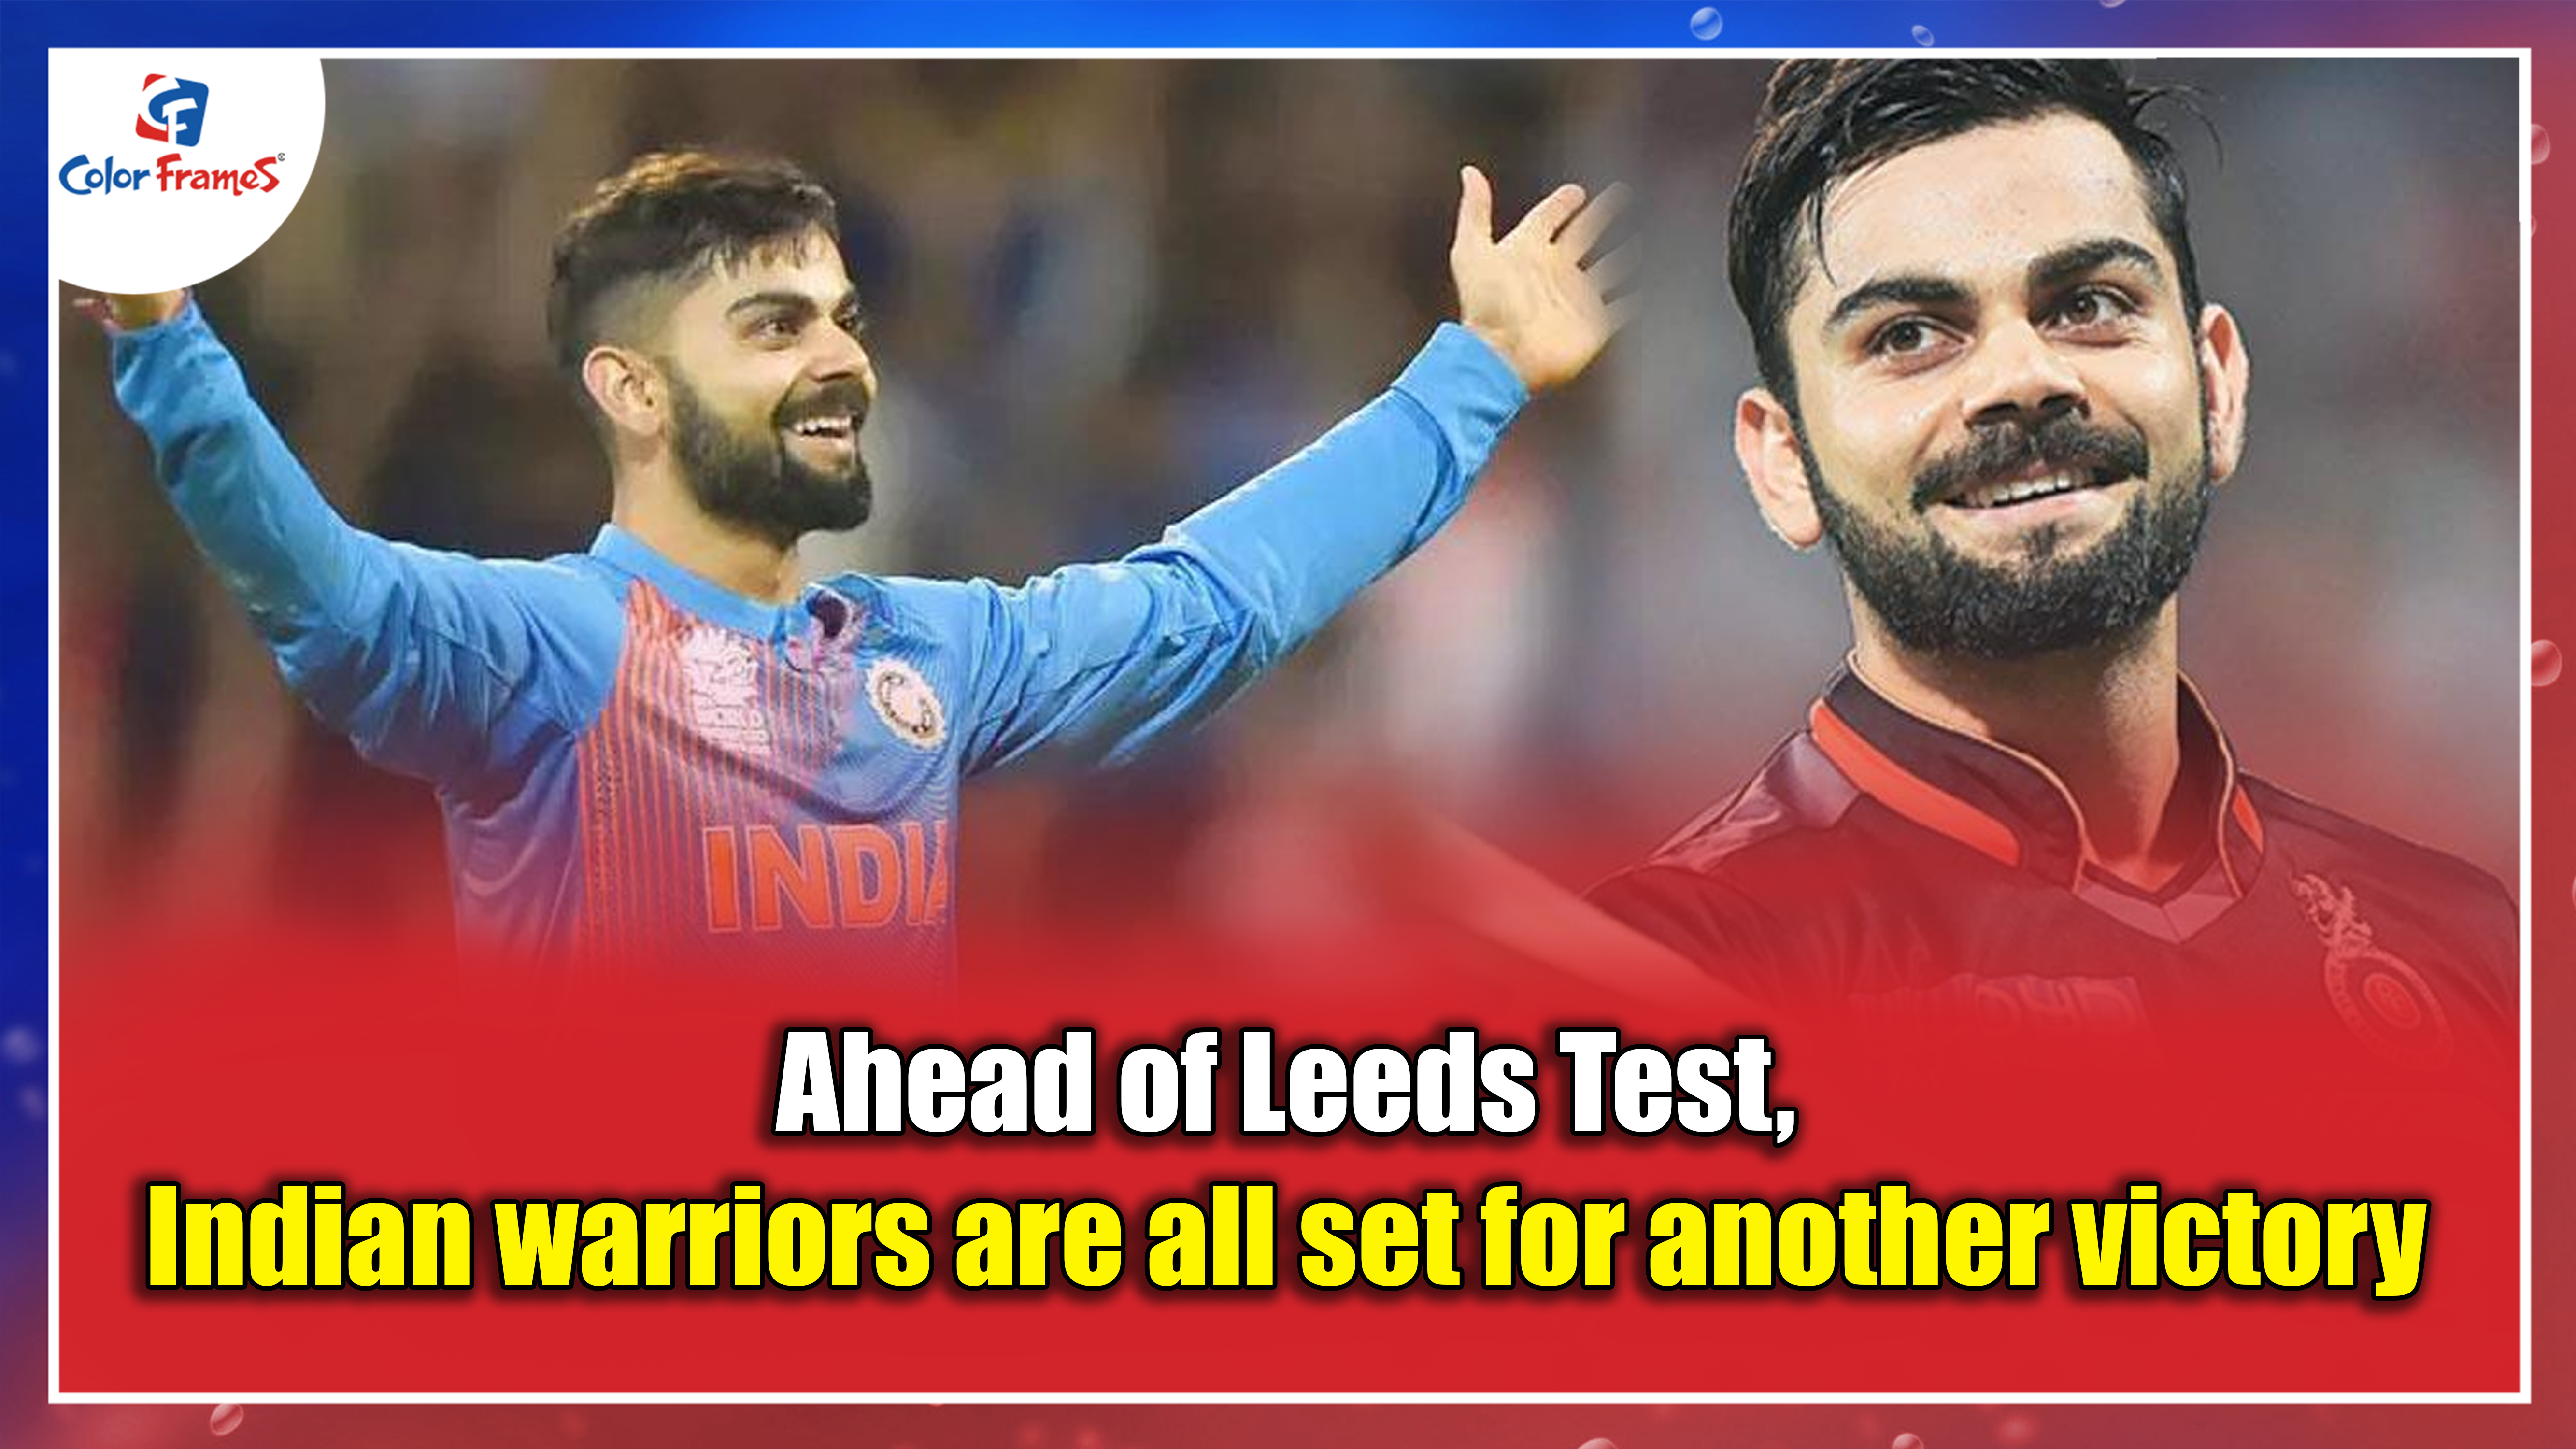 Ahead of Leeds Test, Indian warriors are all set for another victory